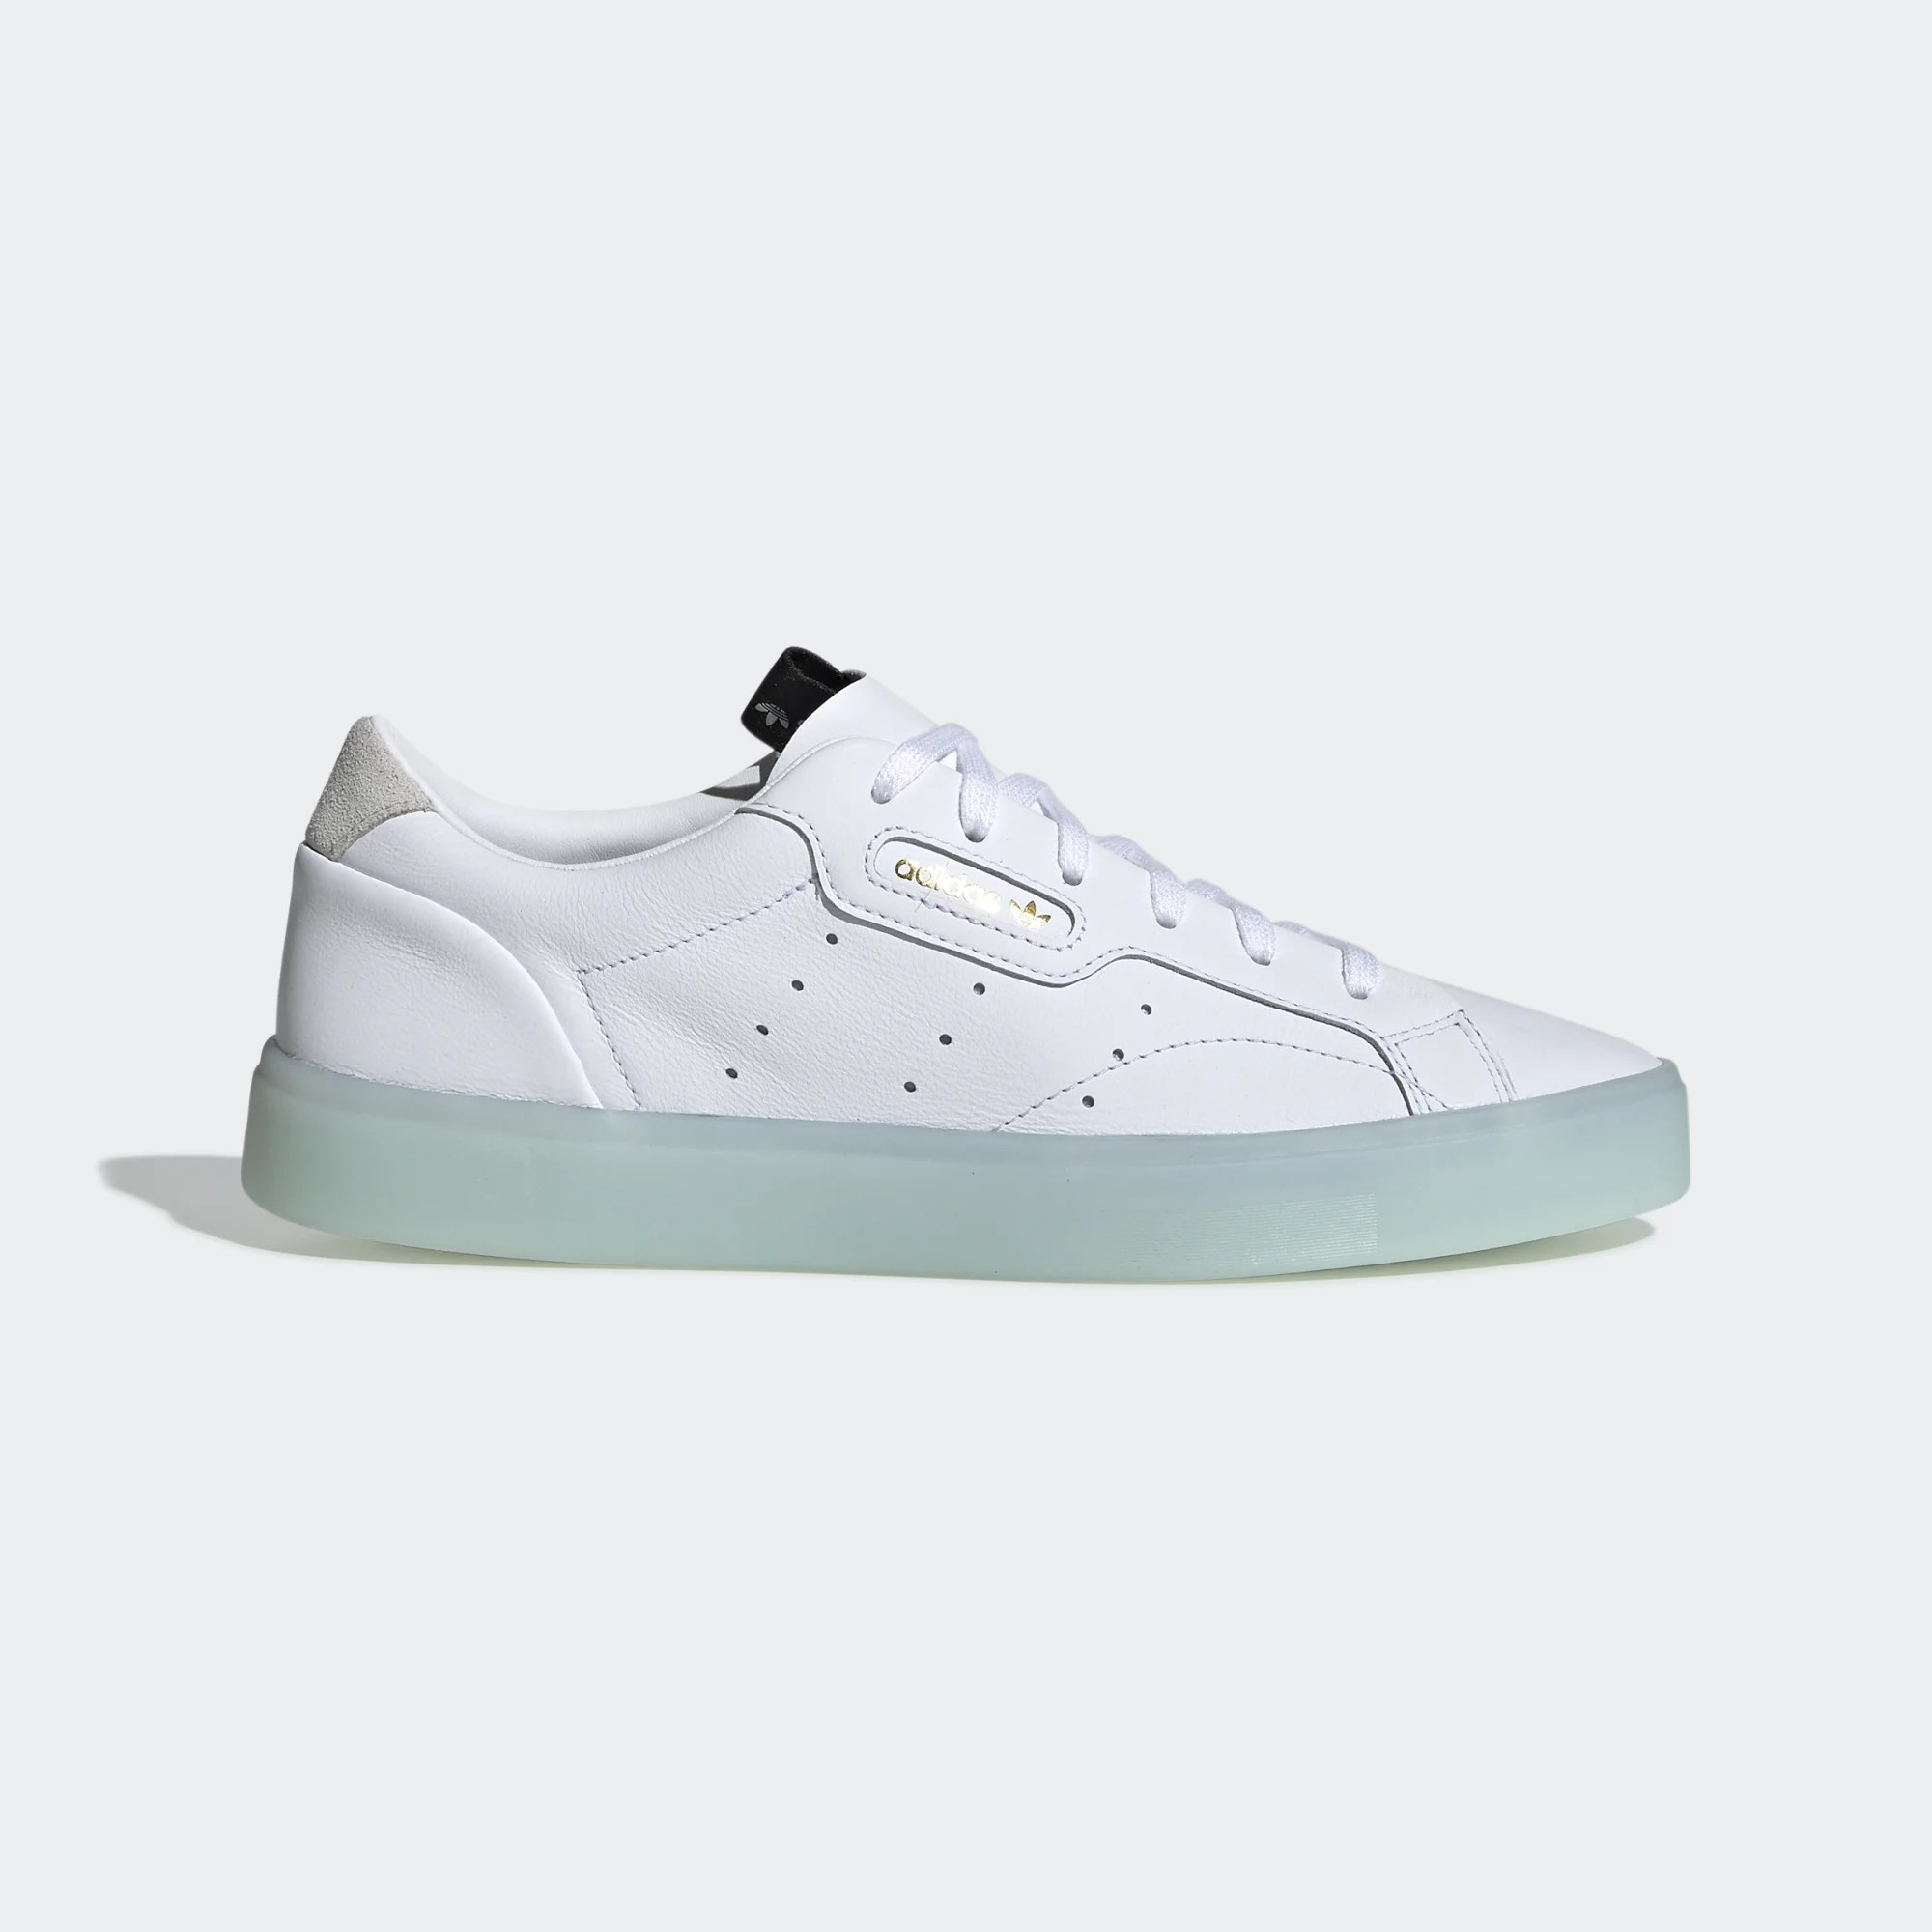 adidas Originals SLEEK W White Ice Mint Women G27342